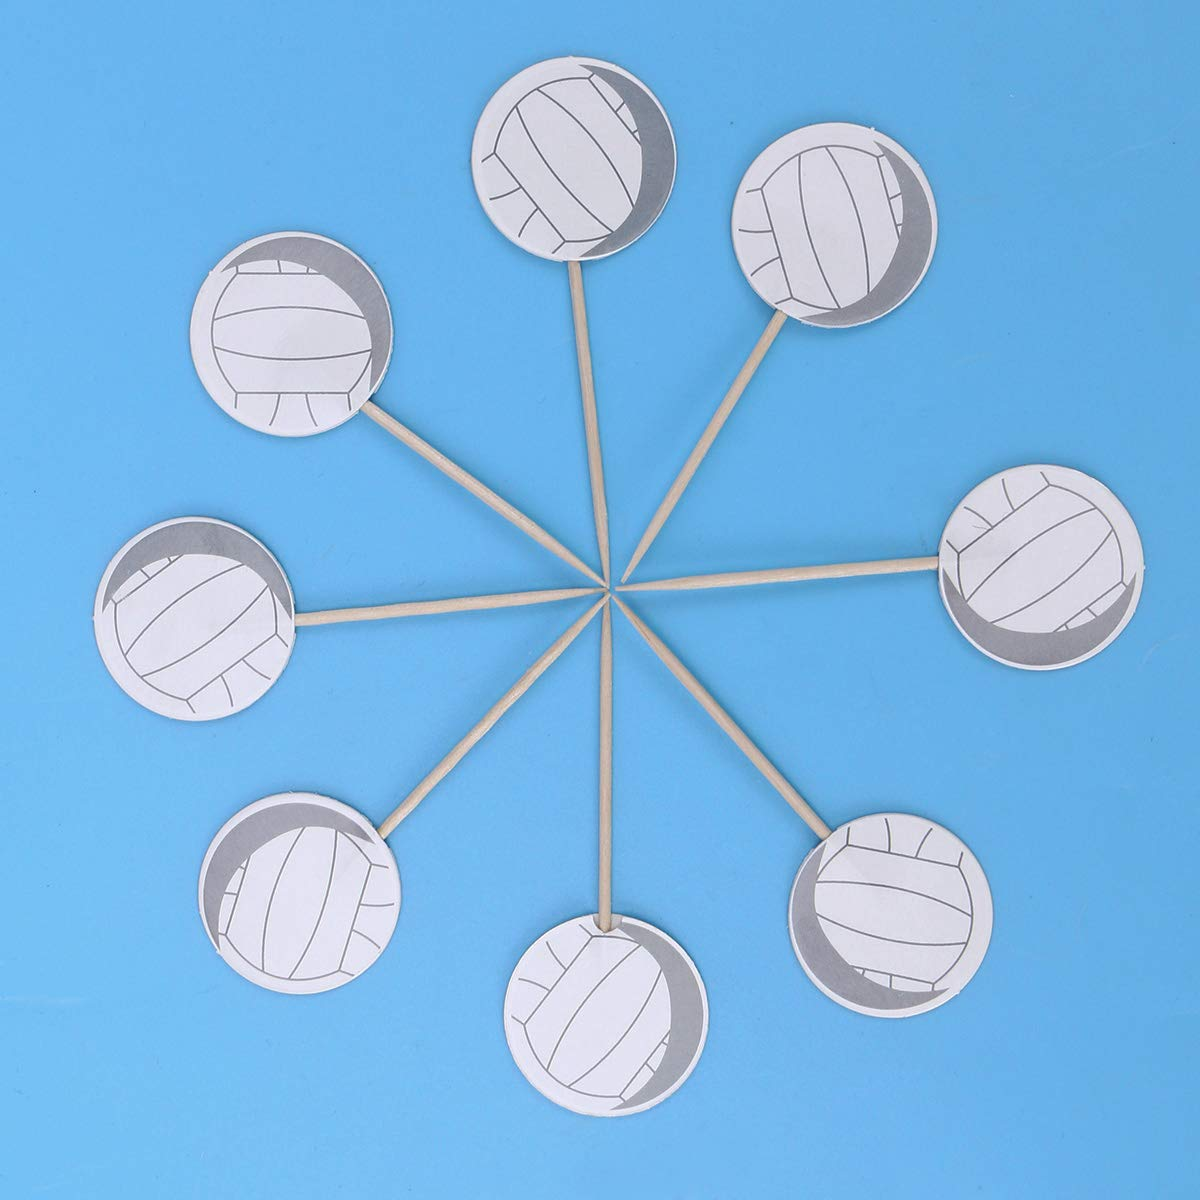 Birthday Party iMagitek 48 Pack Volleyball Cupcake Toppers Decorations for Volleyball Theme Party Baby Shower